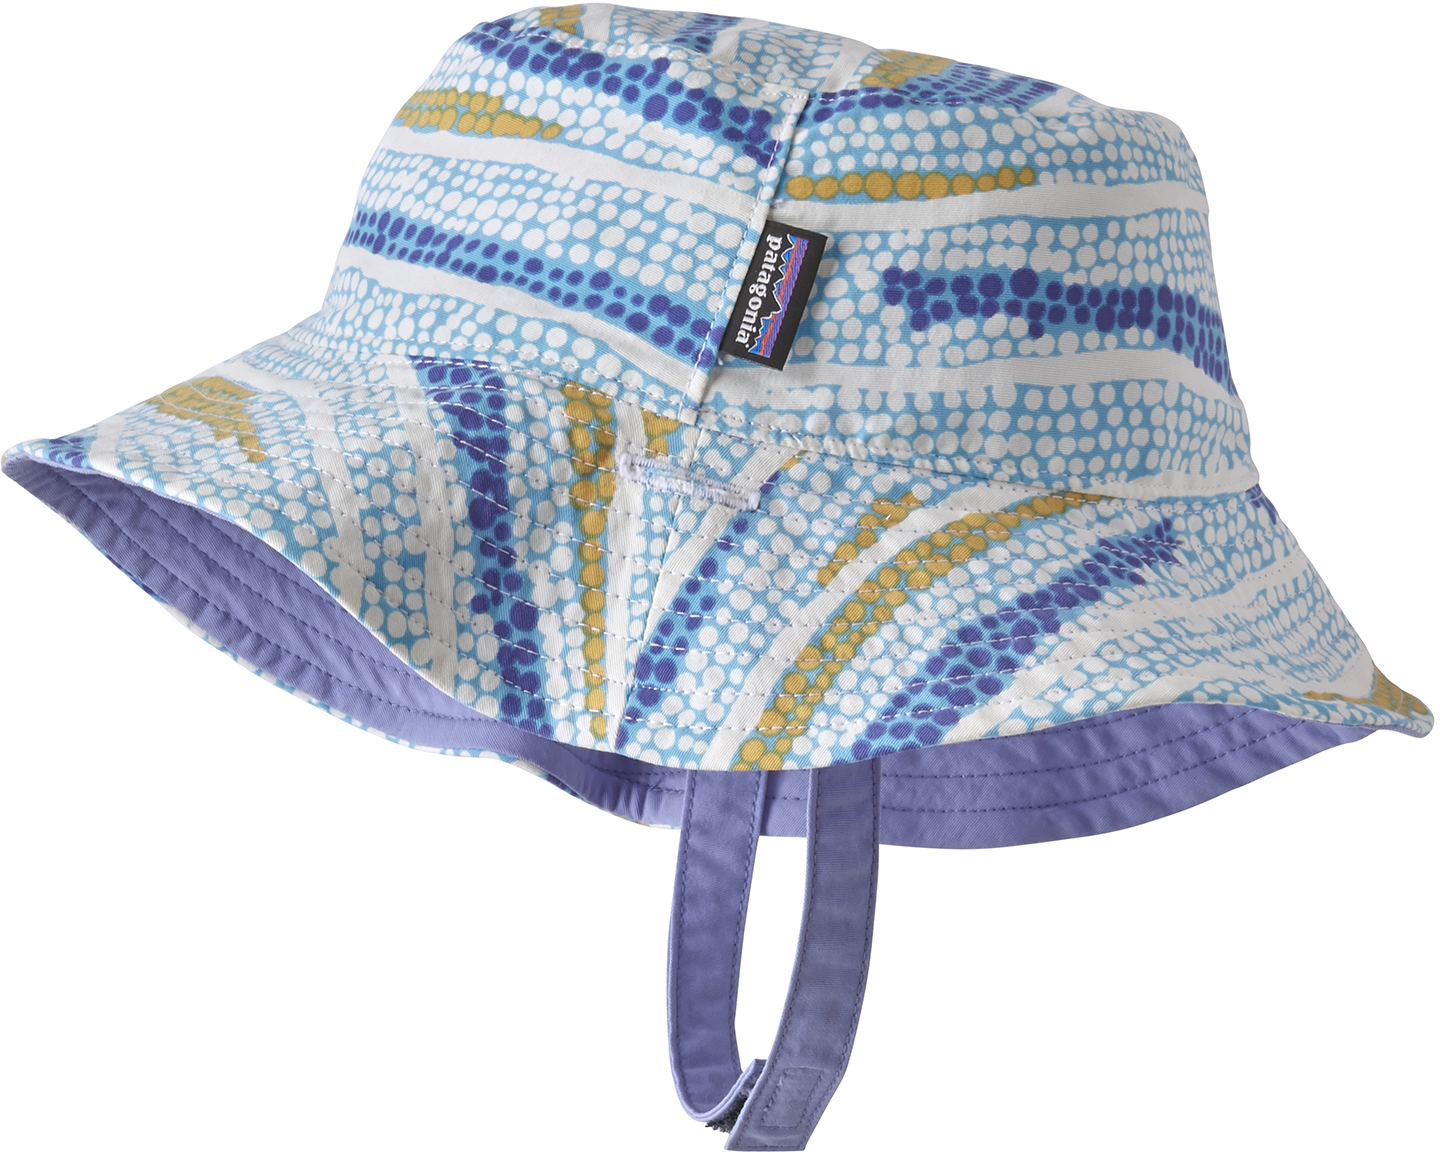 dde8b89179f Patagonia Baby Sun Bucket Hat - Infants to Children